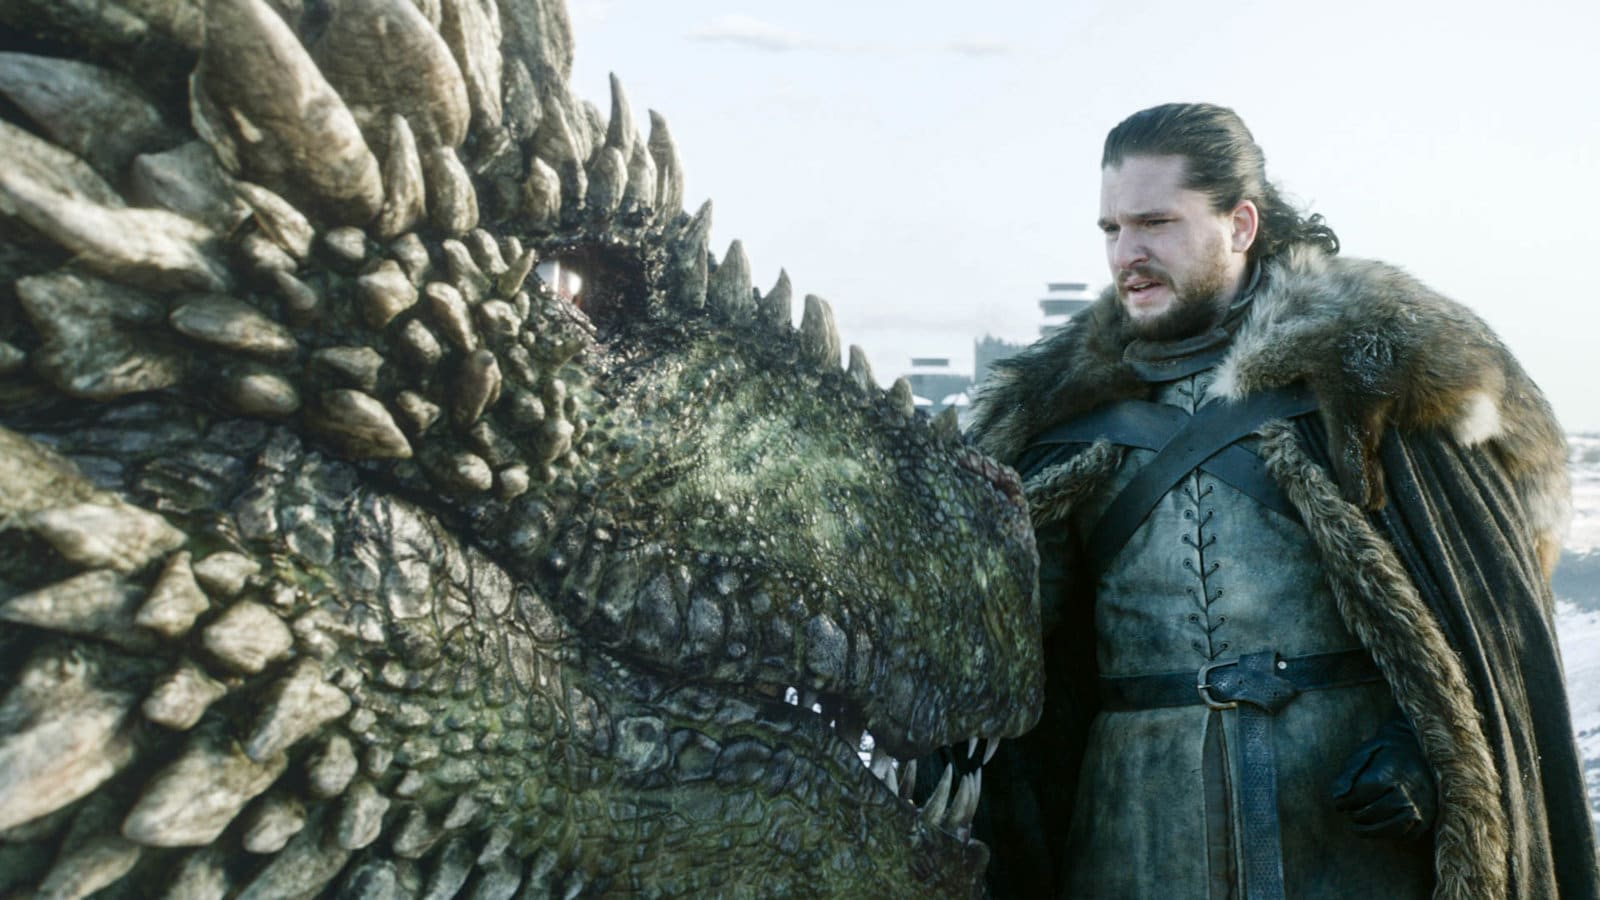 'Game of Thrones' and Amazon's 'Mrs. Maisel' lead Emmy nominations